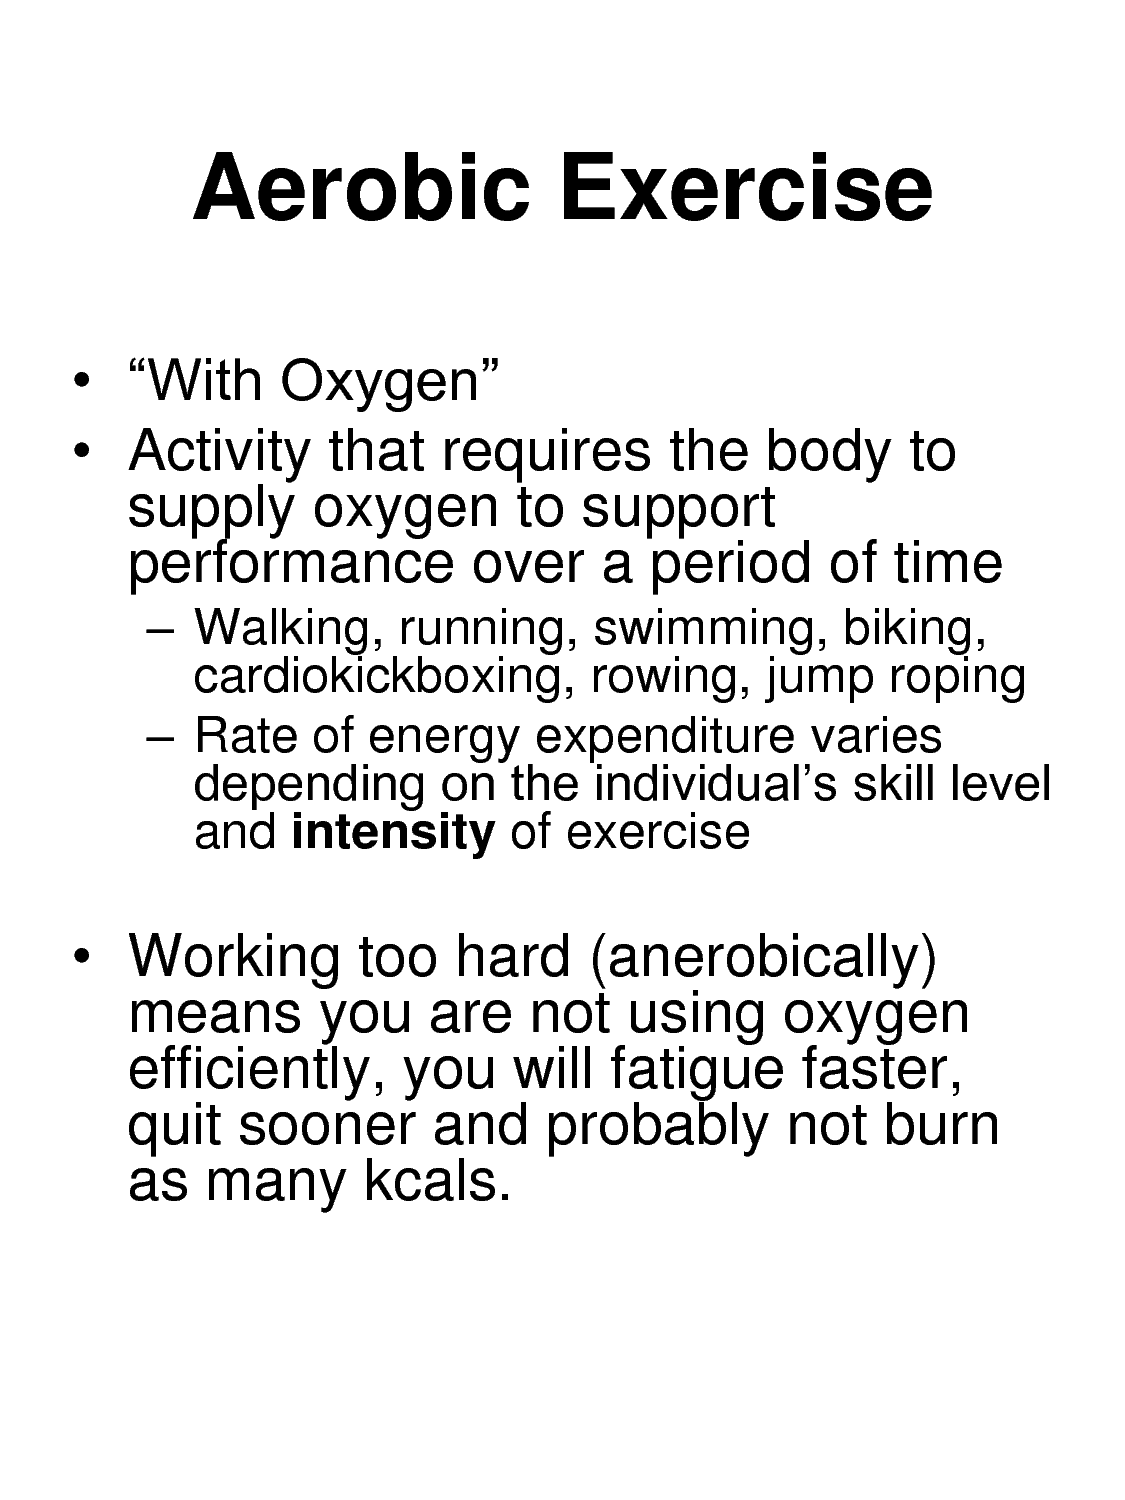 anaerobic exercise examples definition essays